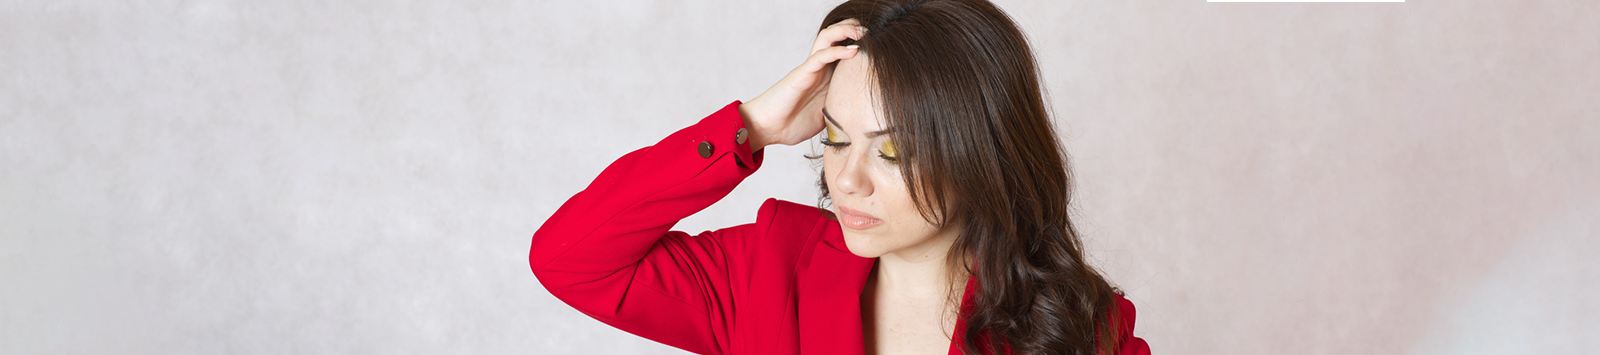 How To Naturally Get Rid of Headaches and Migraines